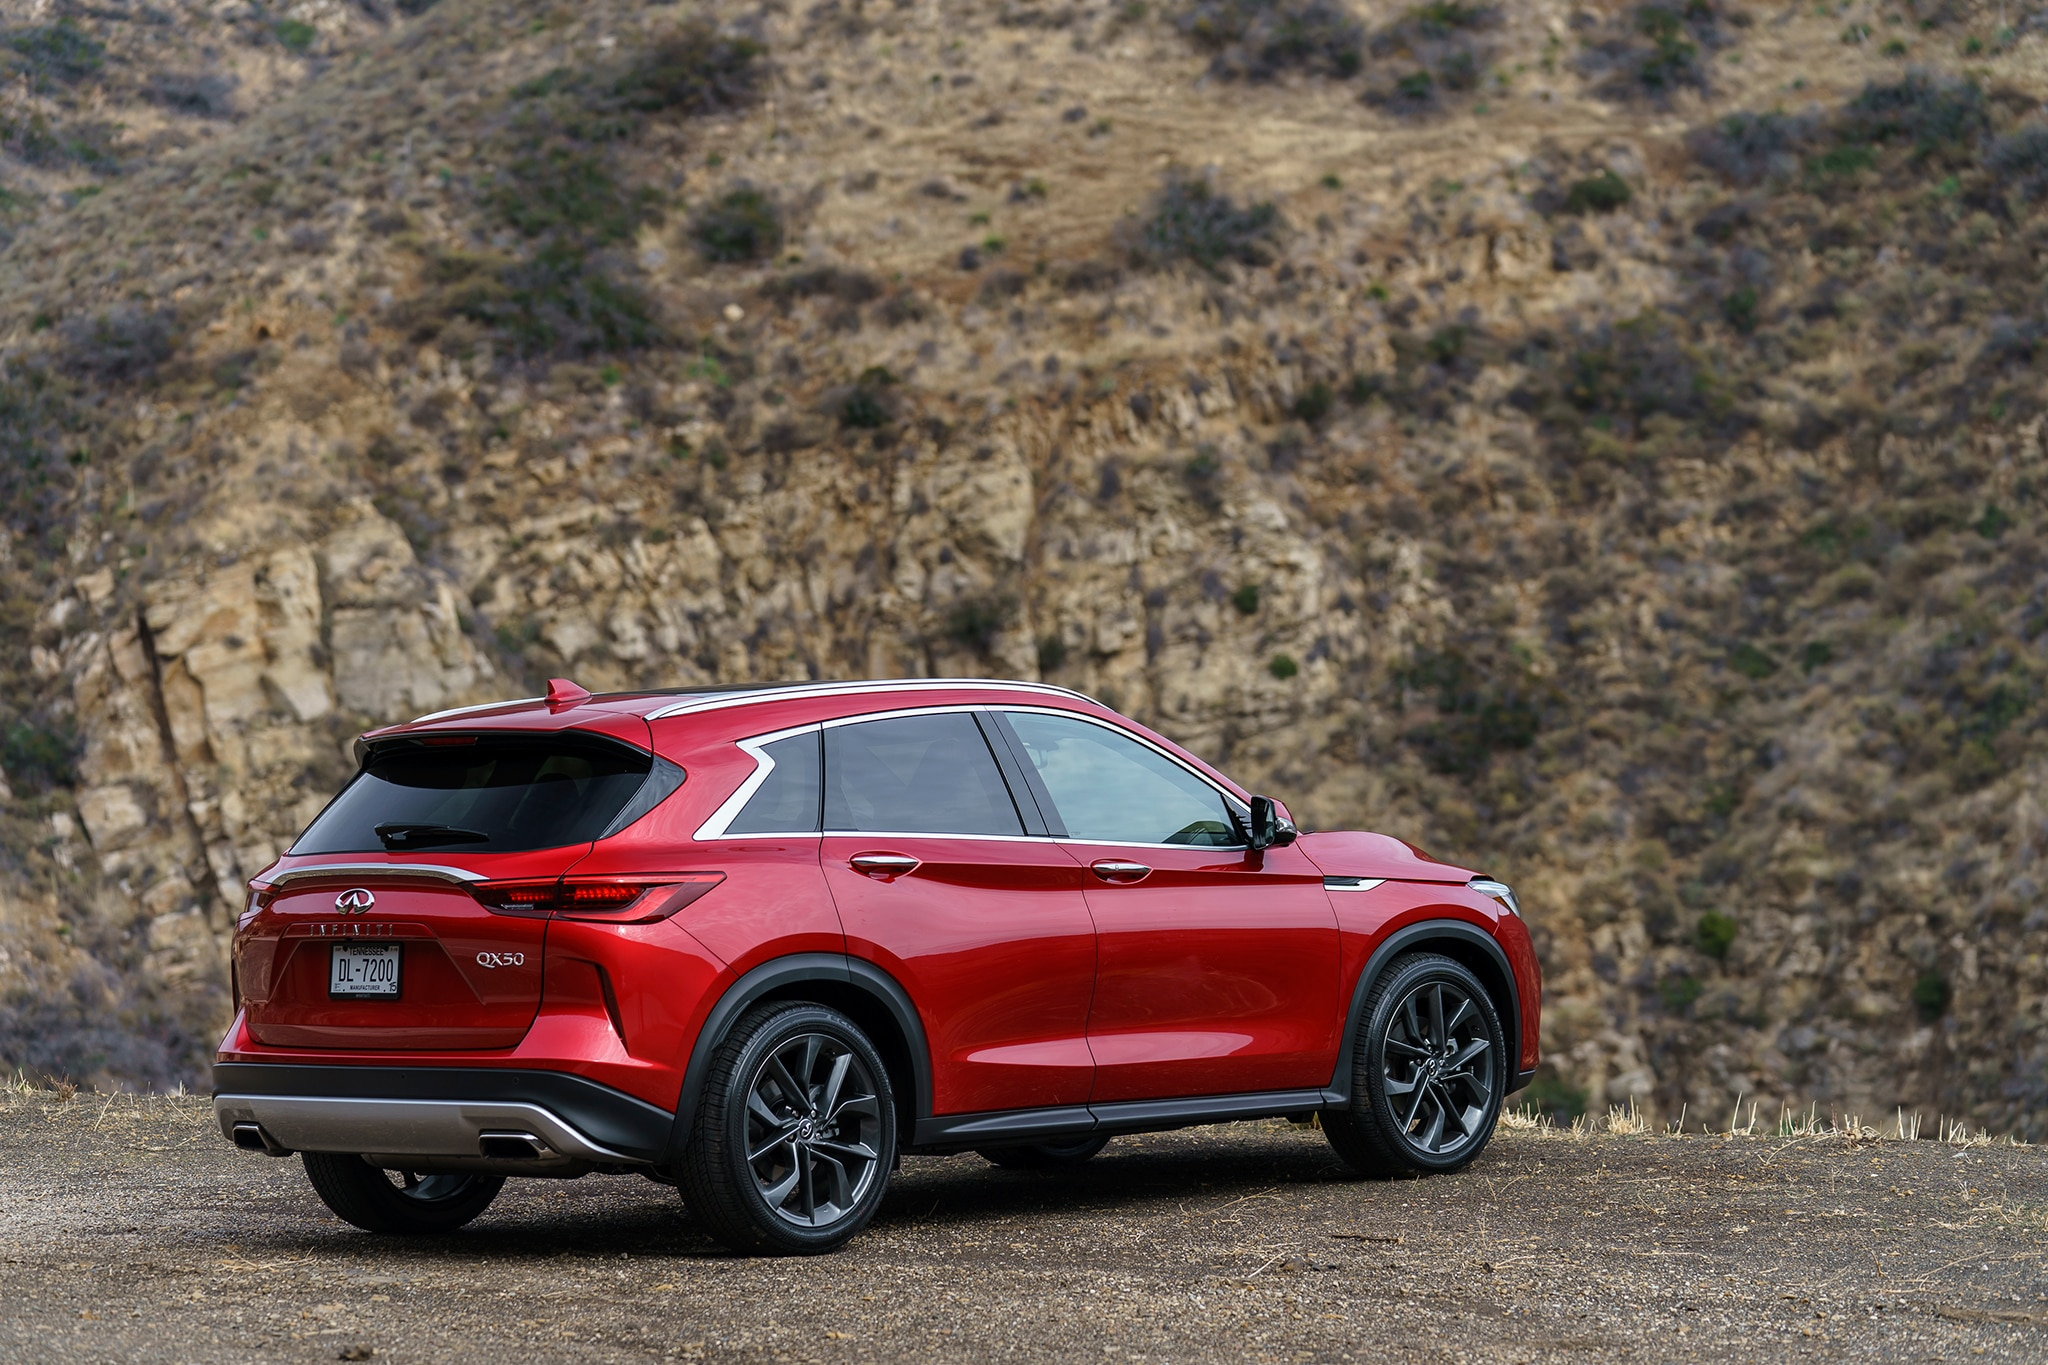 2019 Infiniti QX50 Autograph Package is Inspired by a Luxury